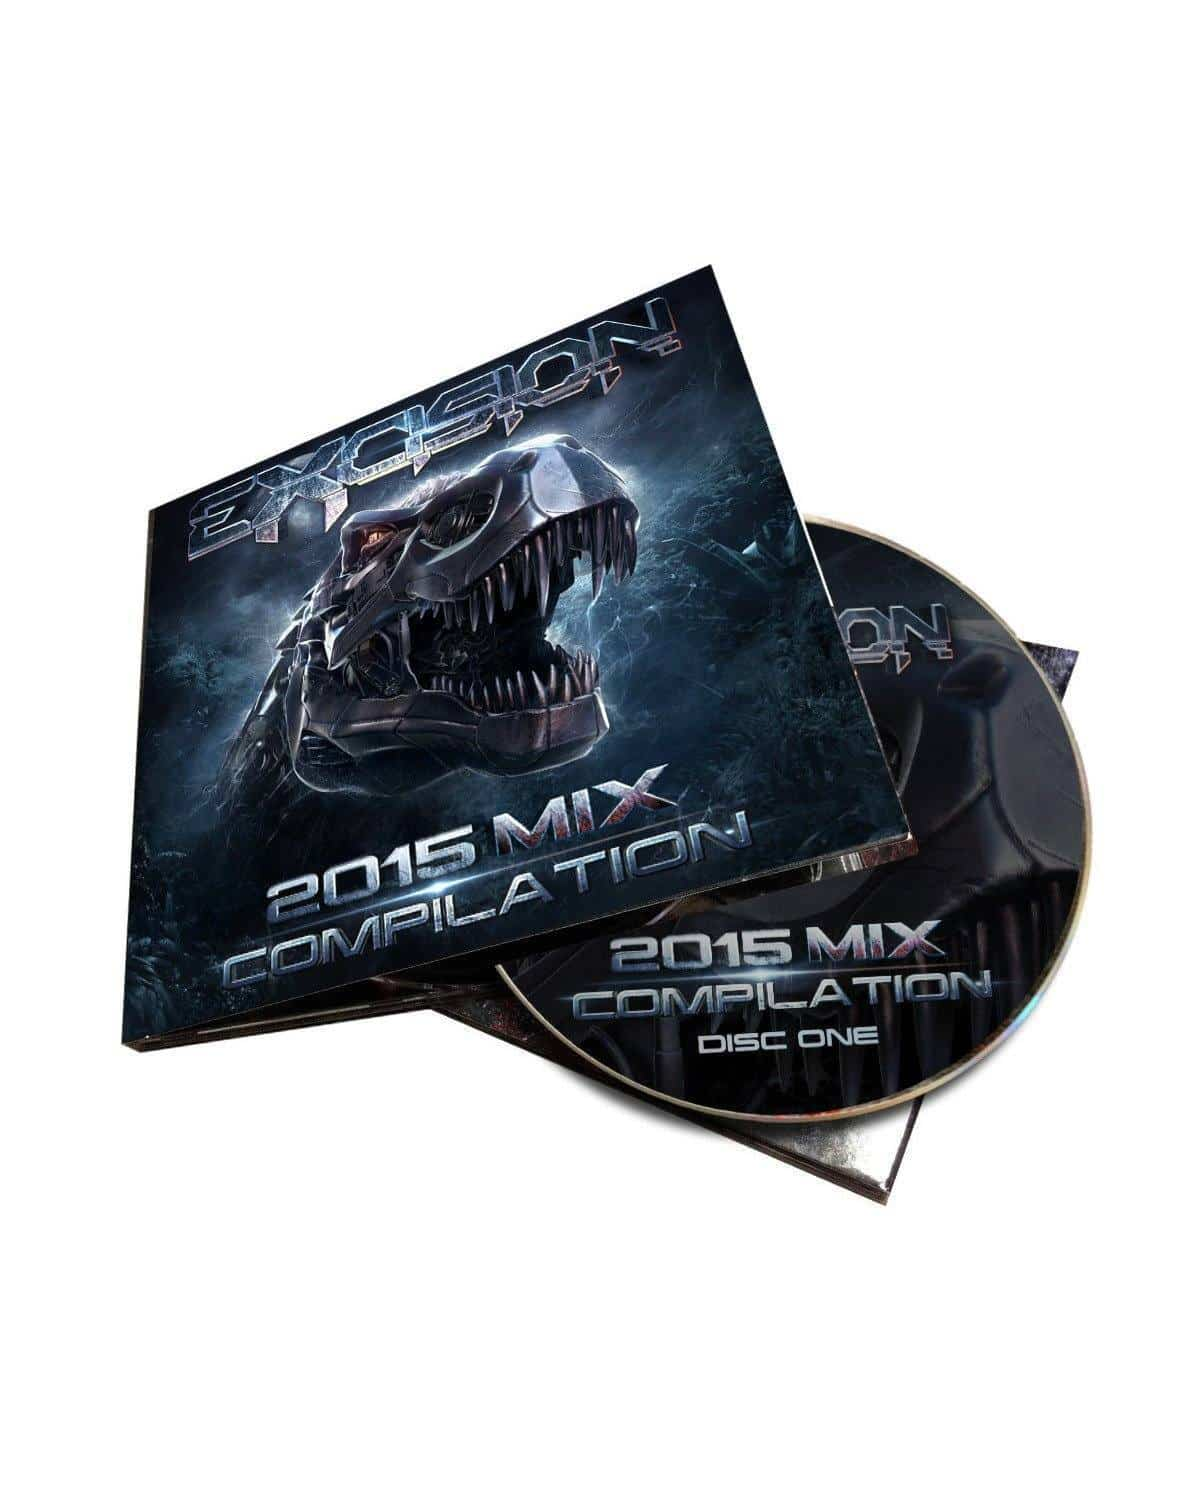 Excision 2015 Mix Compilation CD